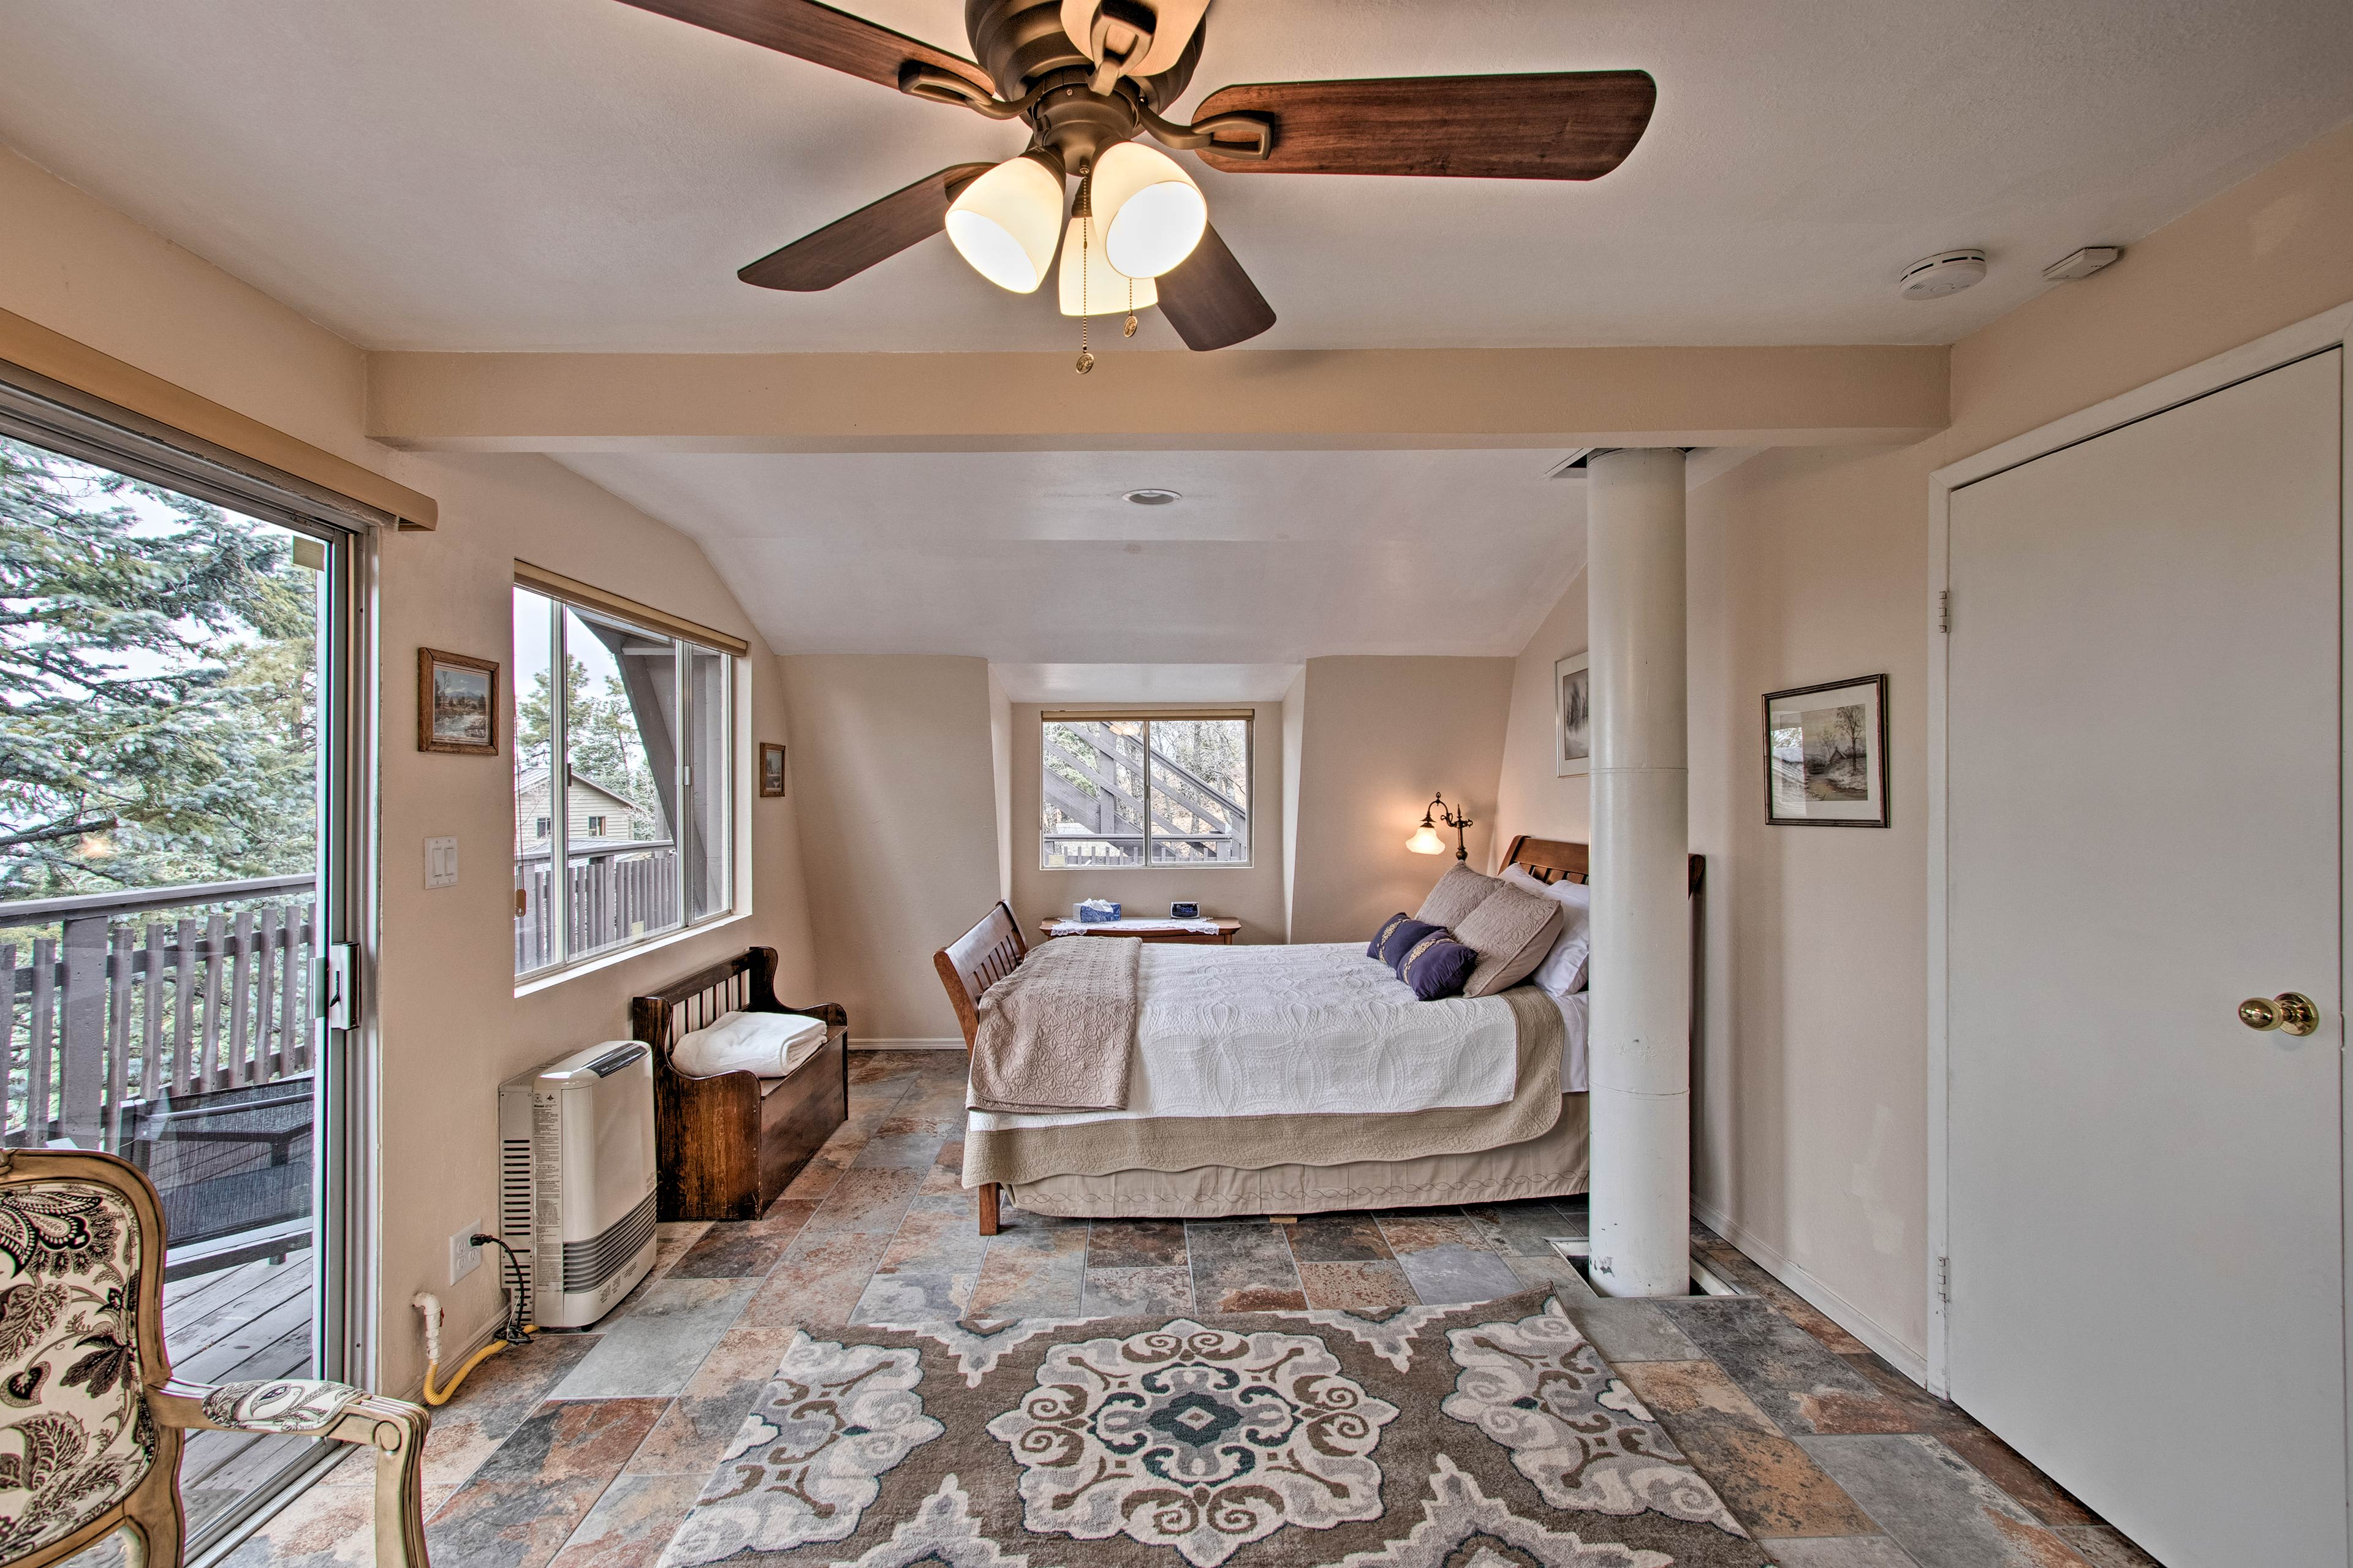 The master bedroom offers a queen bed and private deck access.